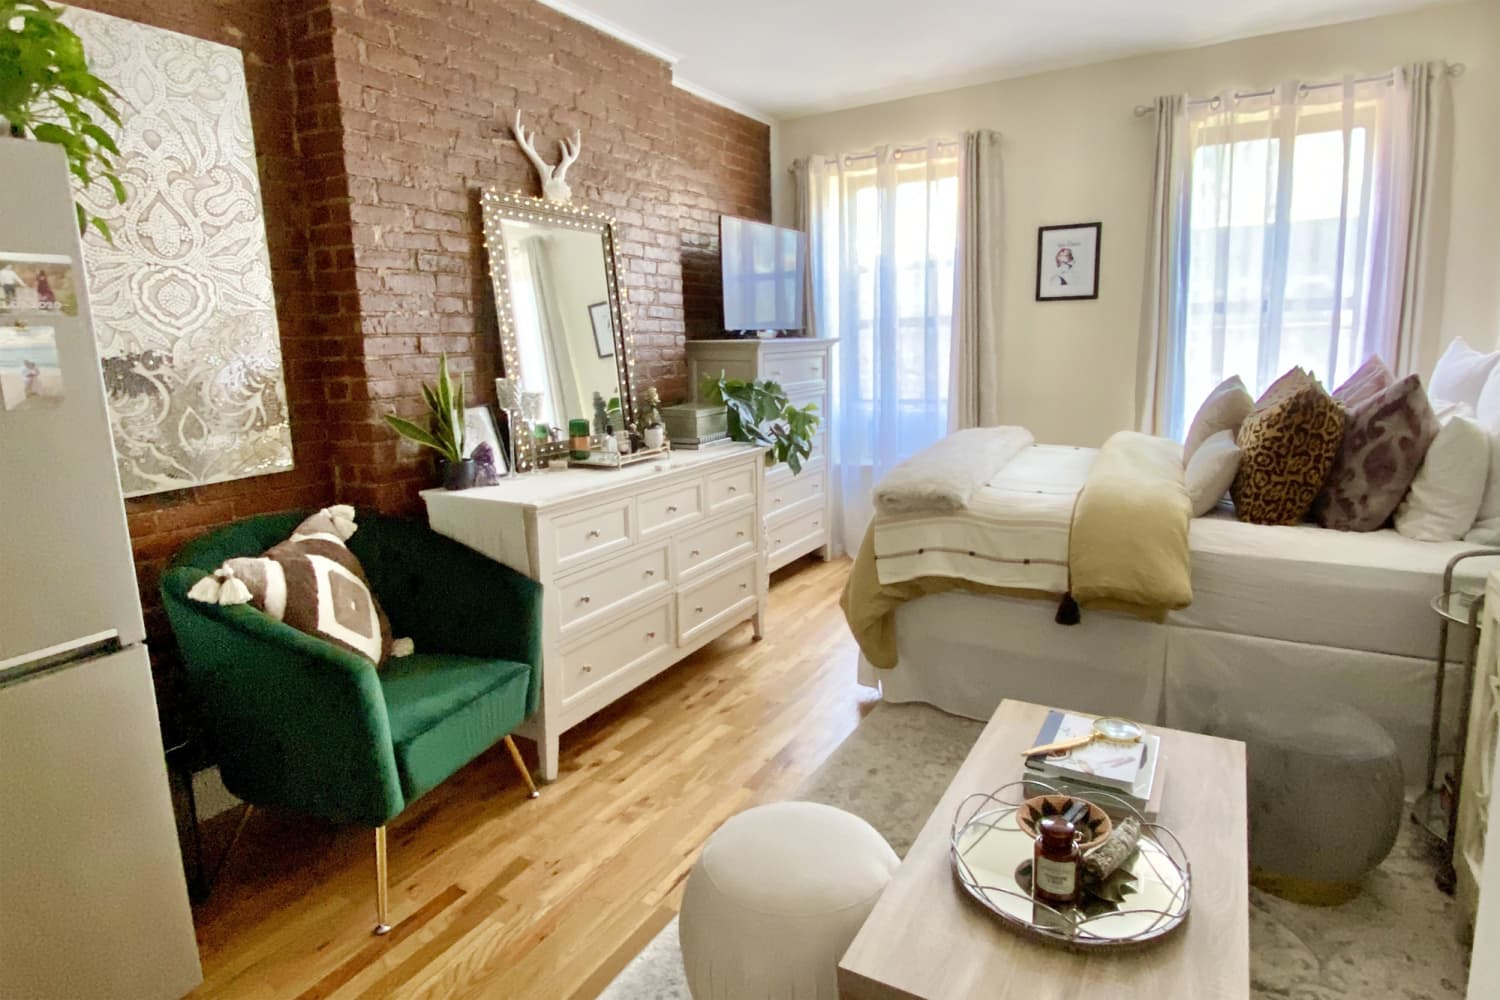 A 300-Square-Foot NYC Studio Apartment Is Like a Glam Little Hotel Room